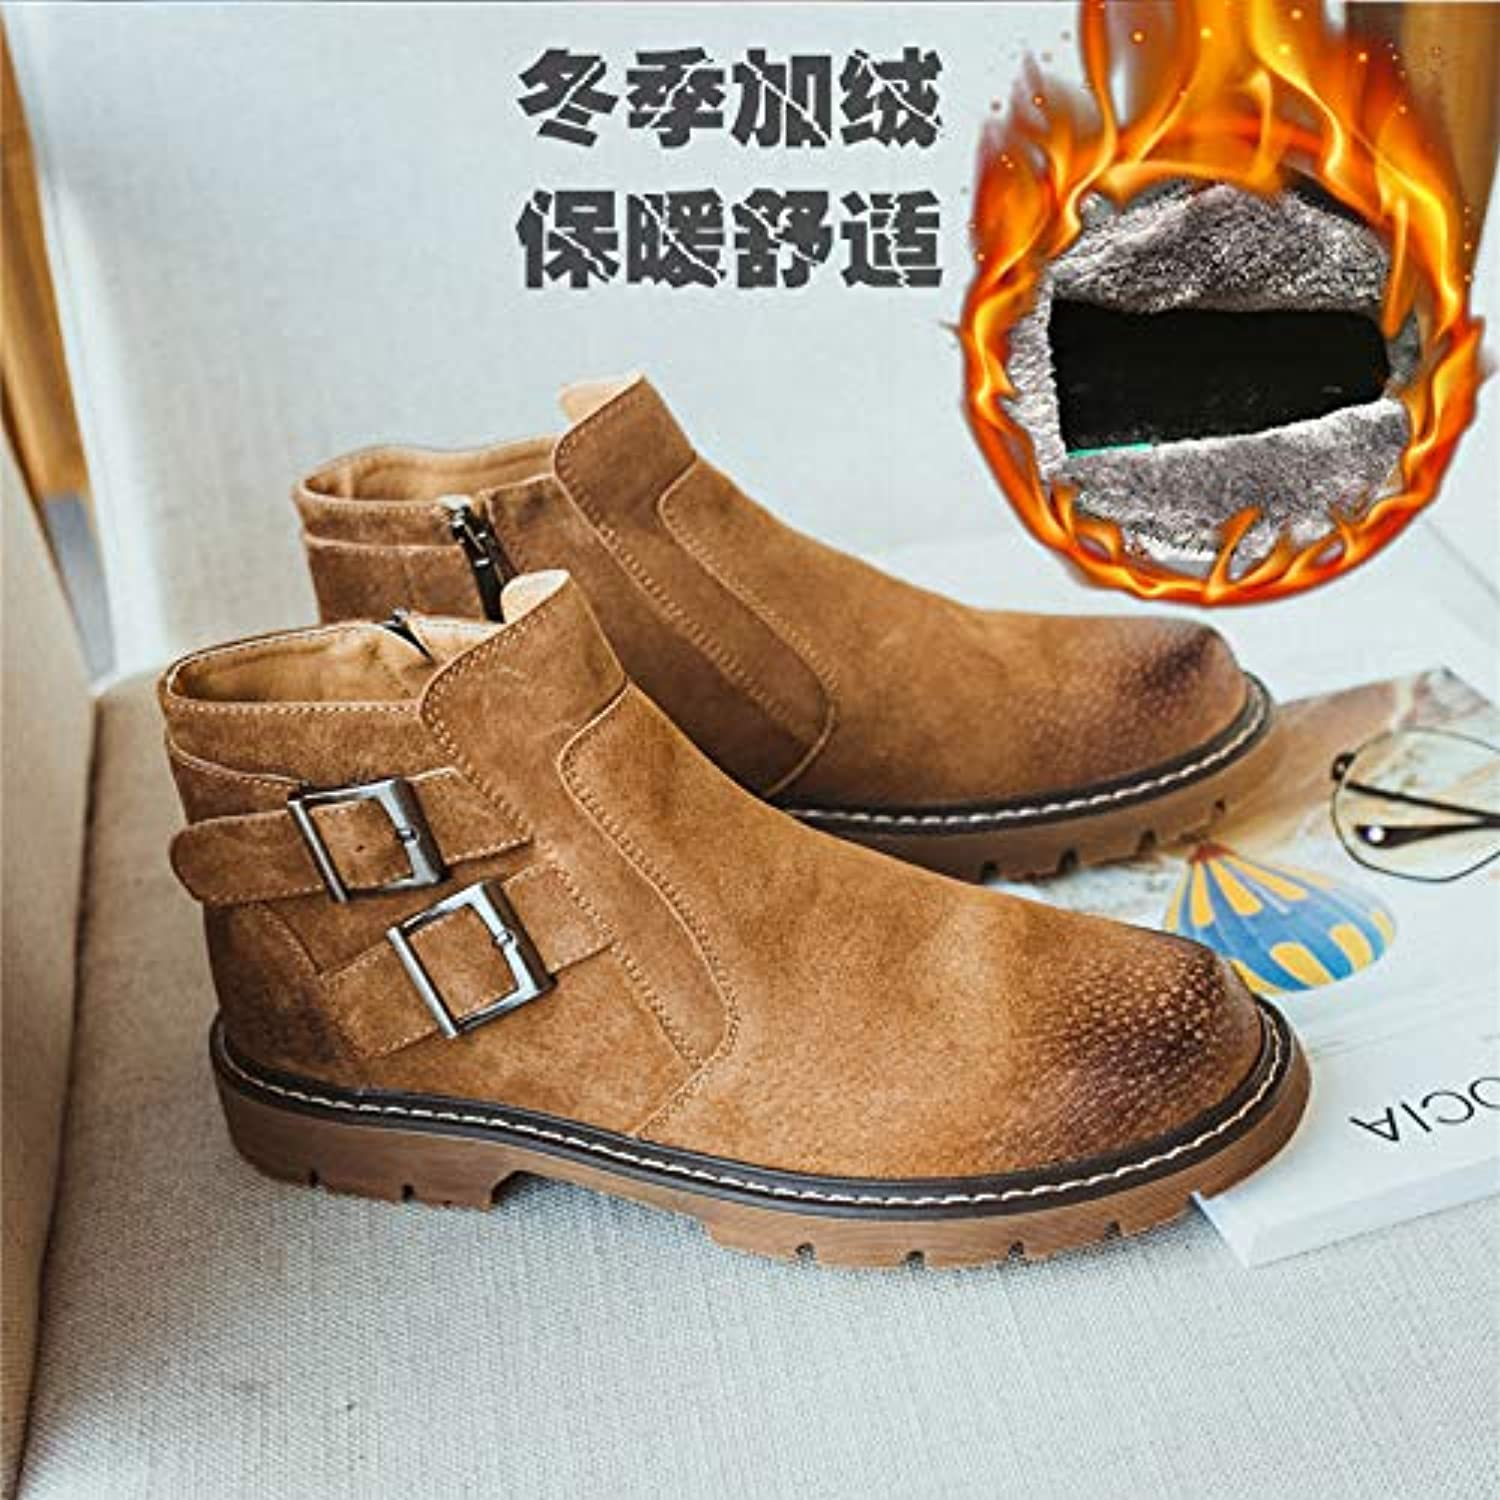 ZyuQ Ankle boots Scrub Martin Boots Men'S Boots High To Help Retro Short Boots Pu Casual Men'S shoes Snow Boots